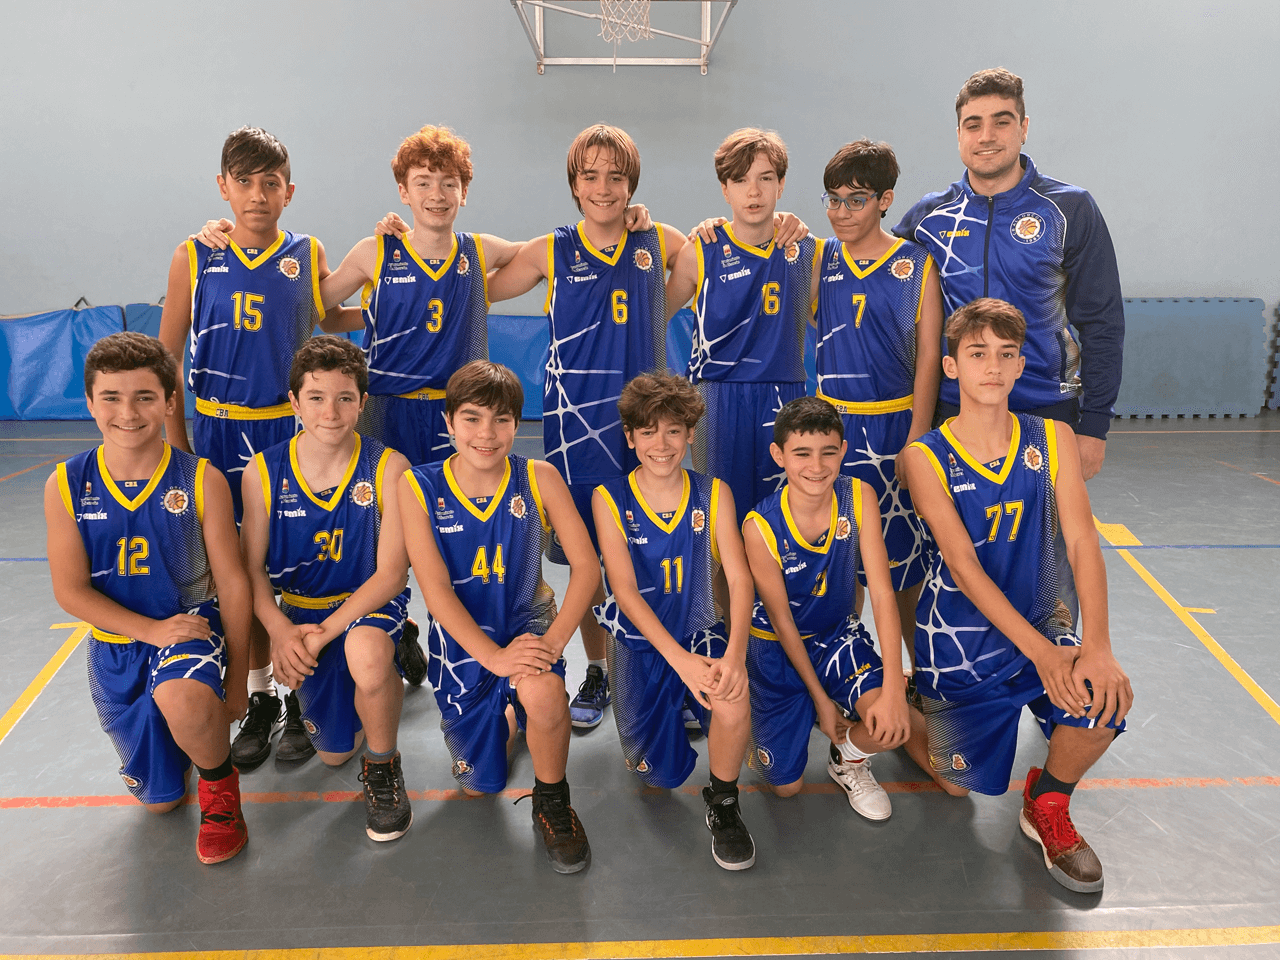 http://clubbaloncestoalcorcon.com/wp-content/uploads/2019/12/equipo-1280.png